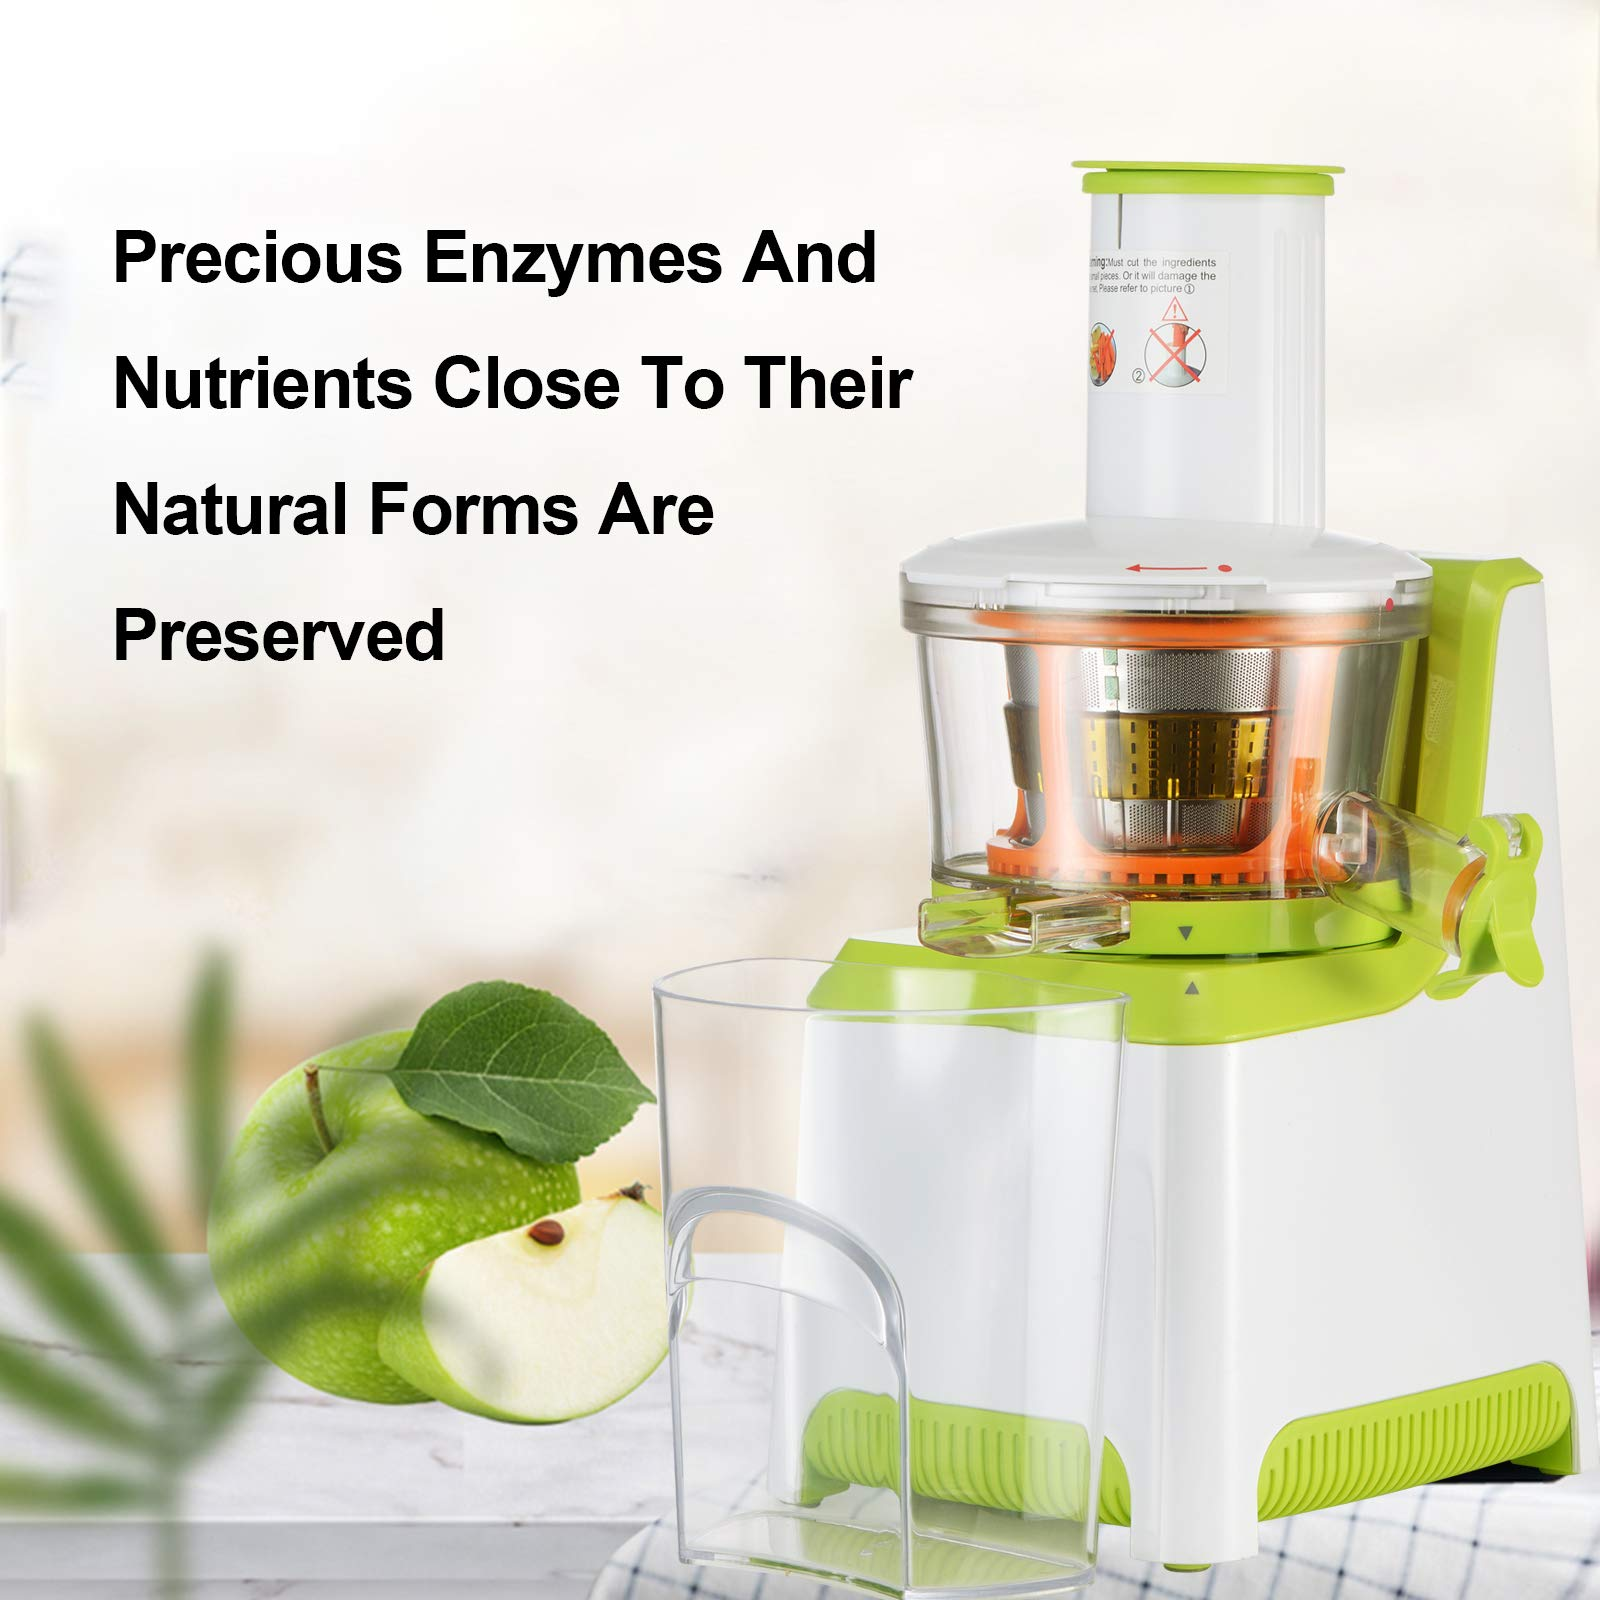 KUPPET Juicer, Slow Masticating Juicer, Higher Juicer Yield, Cold Press Juicer Machine with Quiet Motor & Reverse Function, High Nutrient Fruit & Vegetable Juice, Easy to Clean (Green&White) by KUPPET (Image #2)